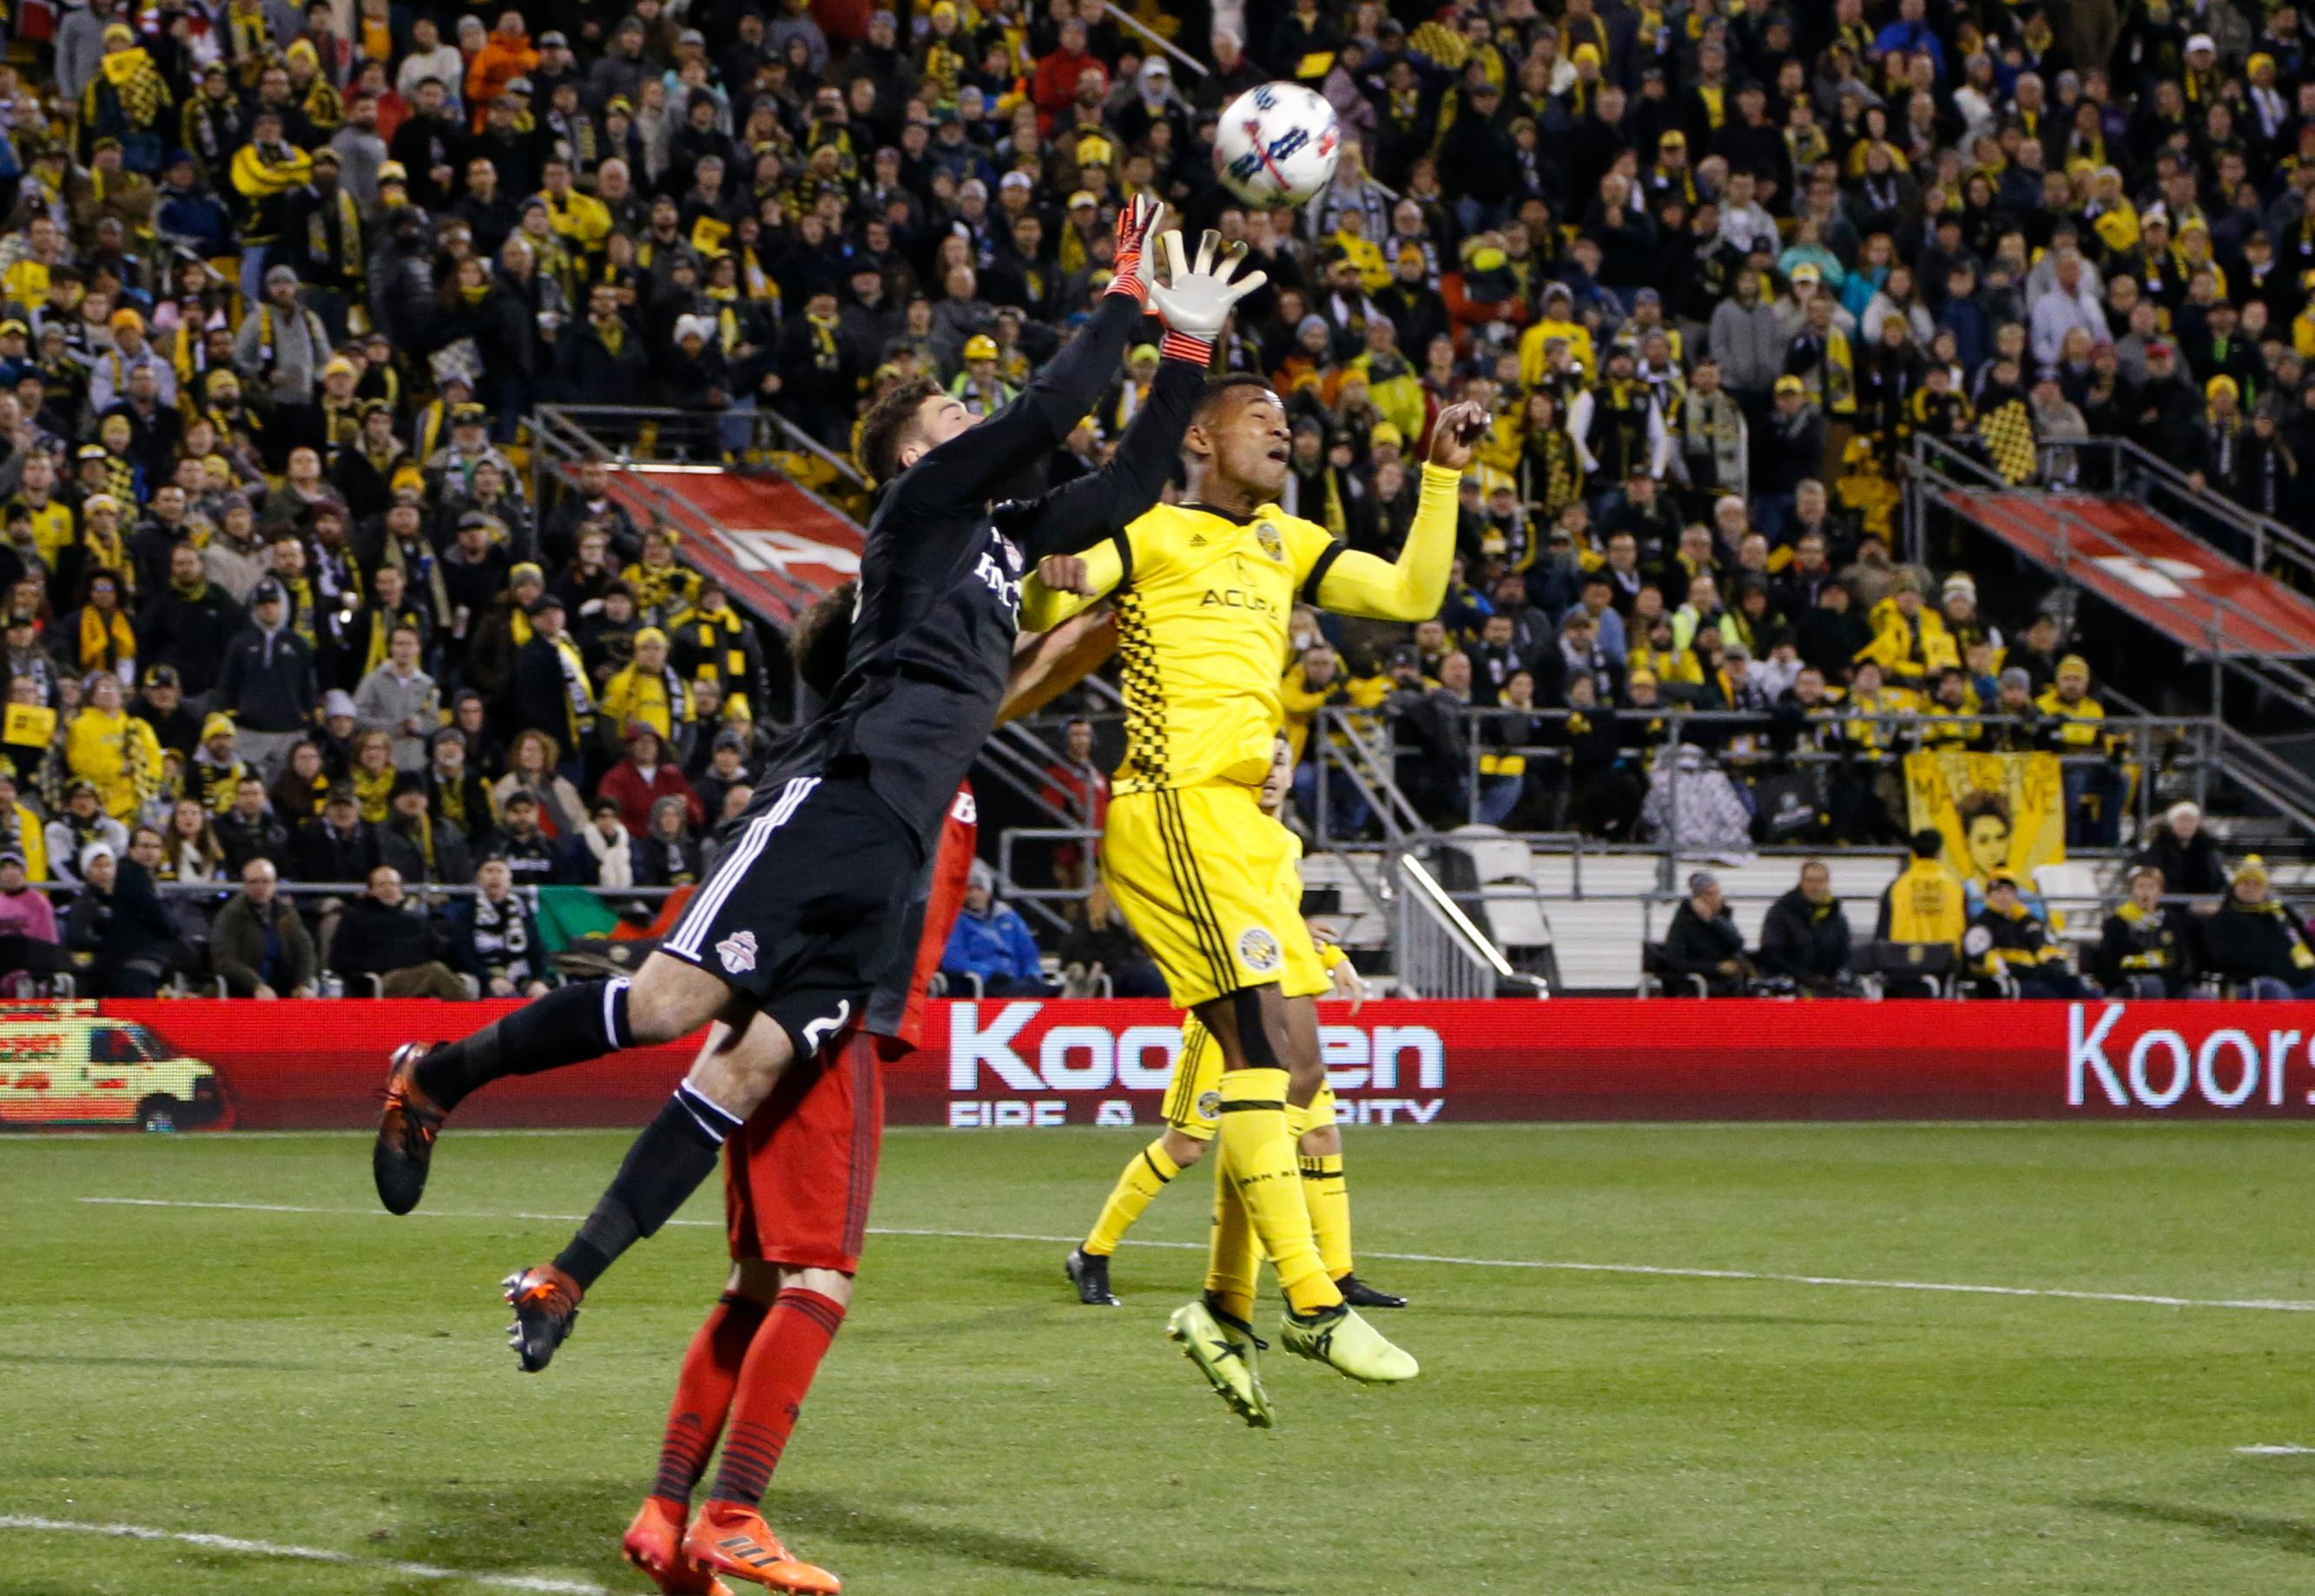 Toronto FC's Alex Bono, left, makes a save over Columbus Crew's Ola Kamara during the first half of an MLS Eastern Conference championship soccer match Tuesday, Nov. 21, 2017, in Columbus, Ohio. (AP Photo/Jay LaPrete)